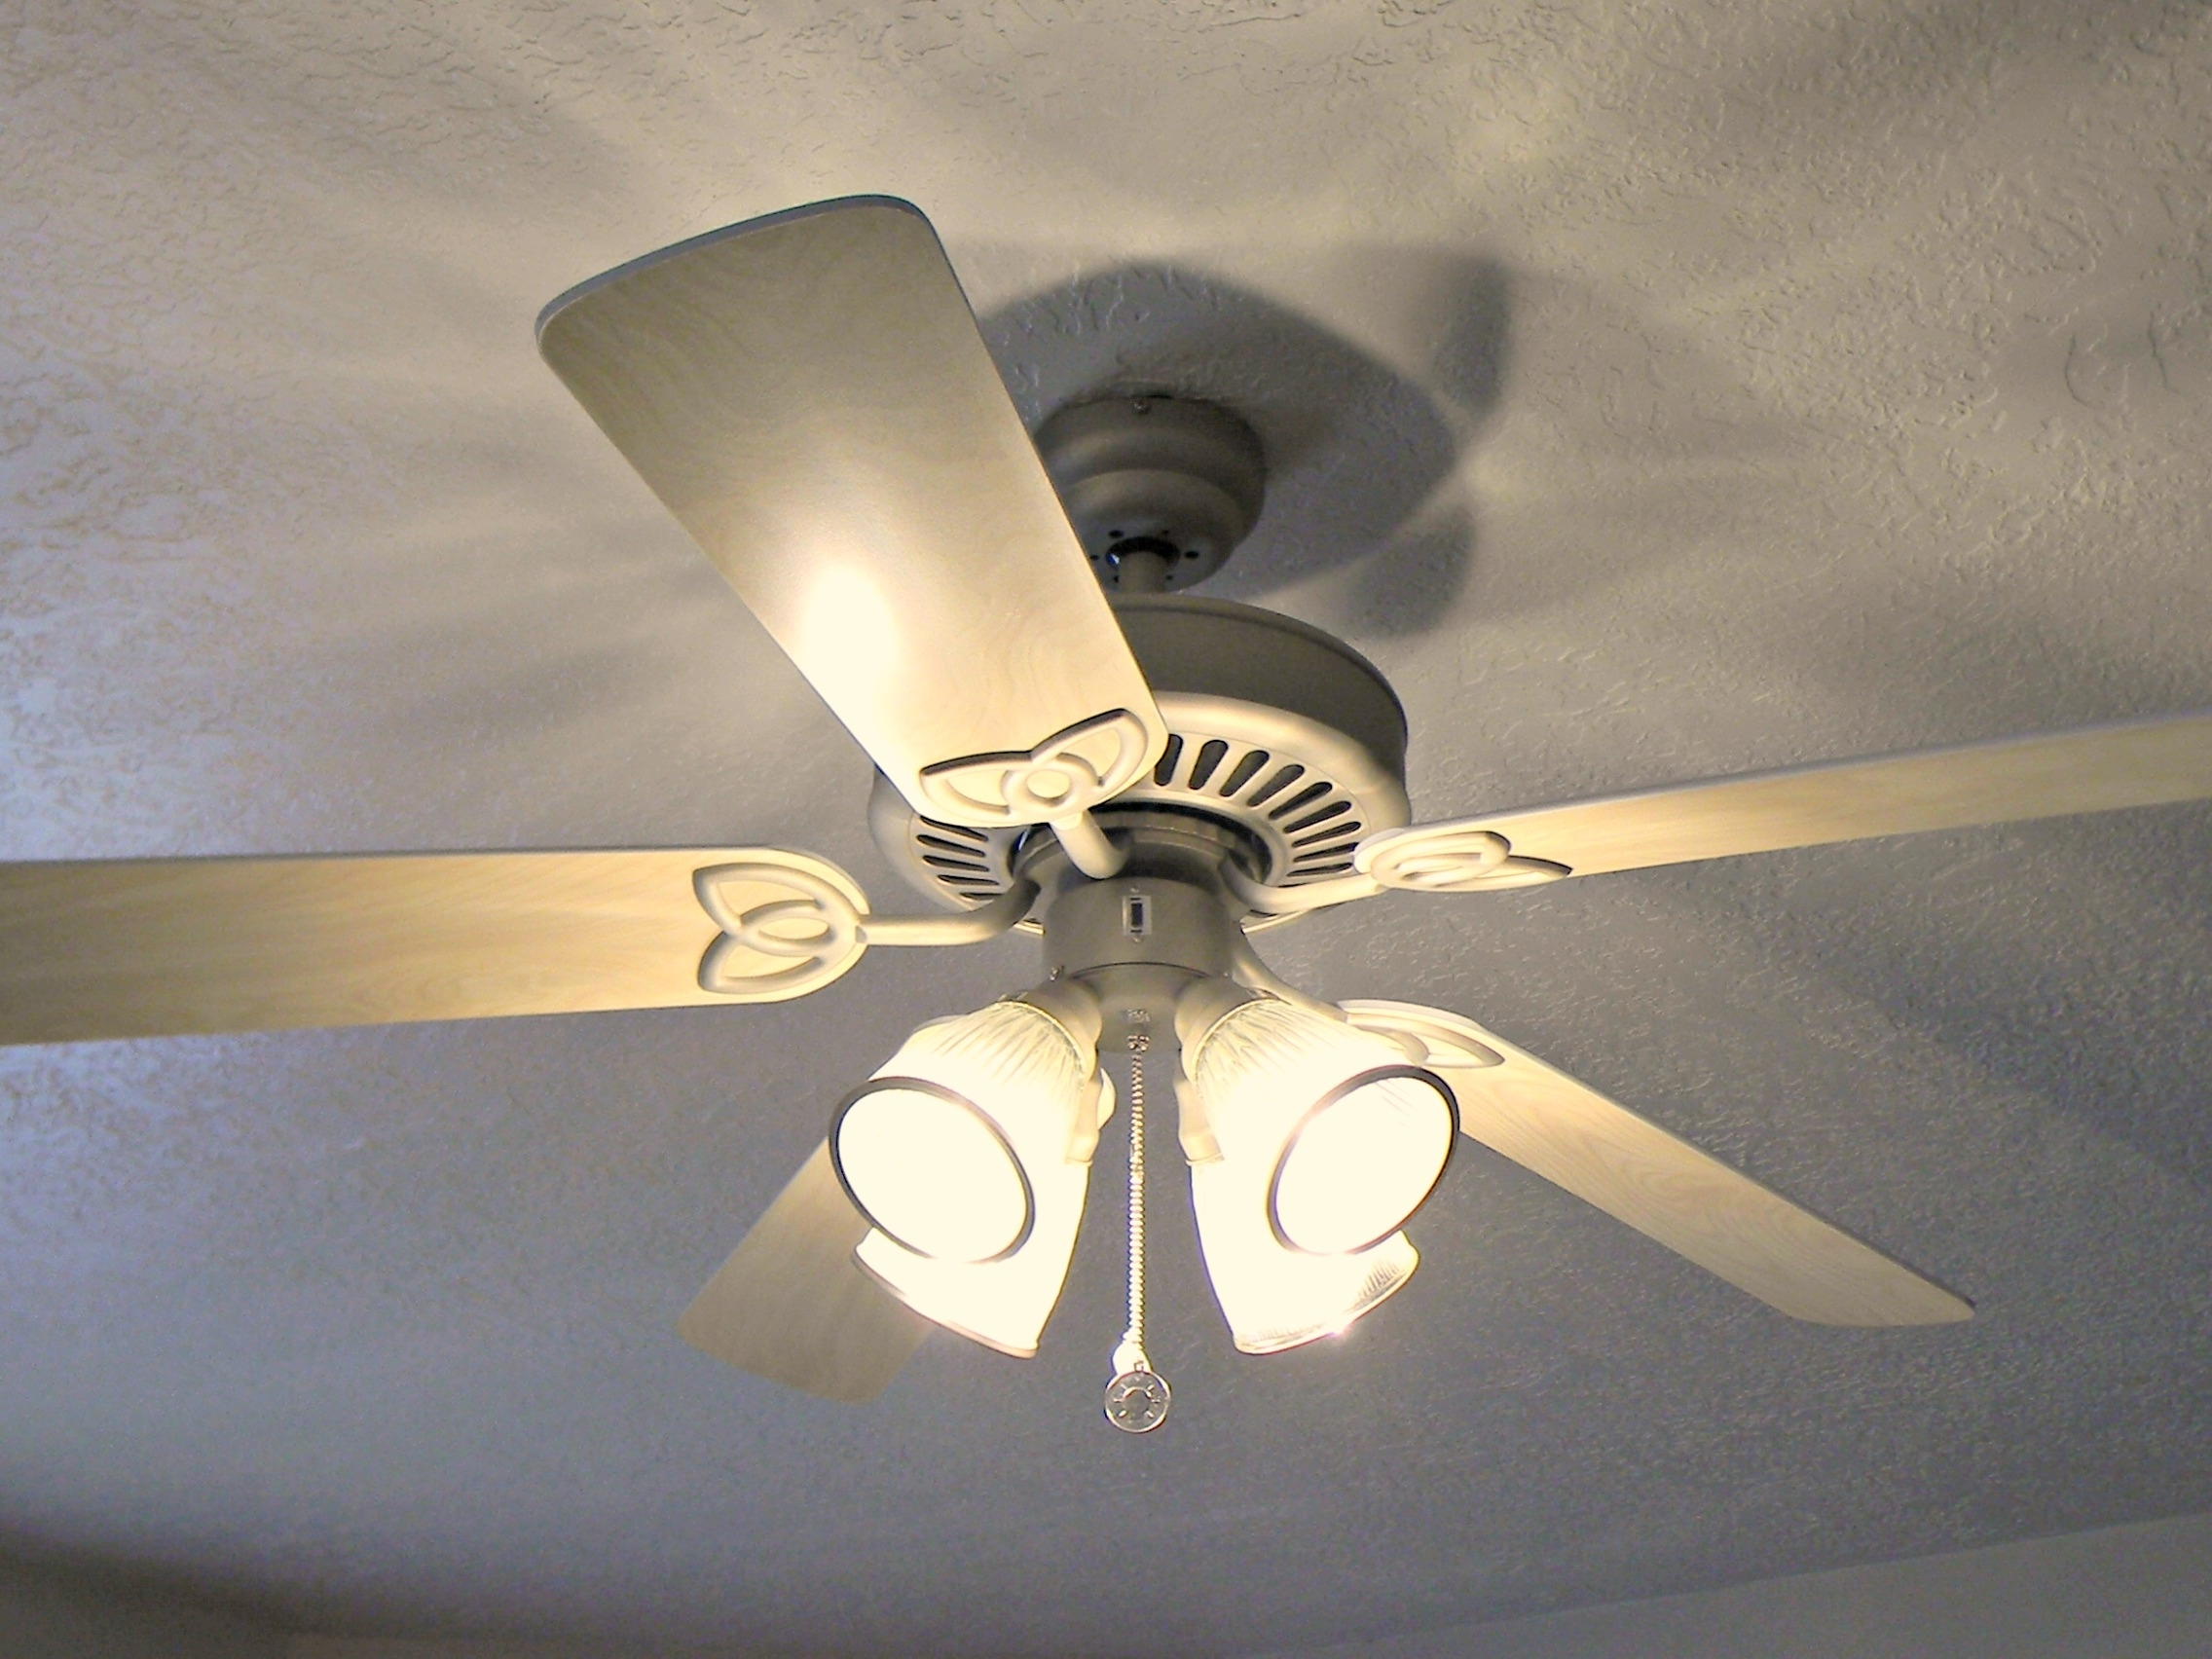 Well Known Outdoor Ceiling Fans With Light Globes With Regard To Best Contemporary Ceiling Fan With Light — All Contemporary Design (View 18 of 20)